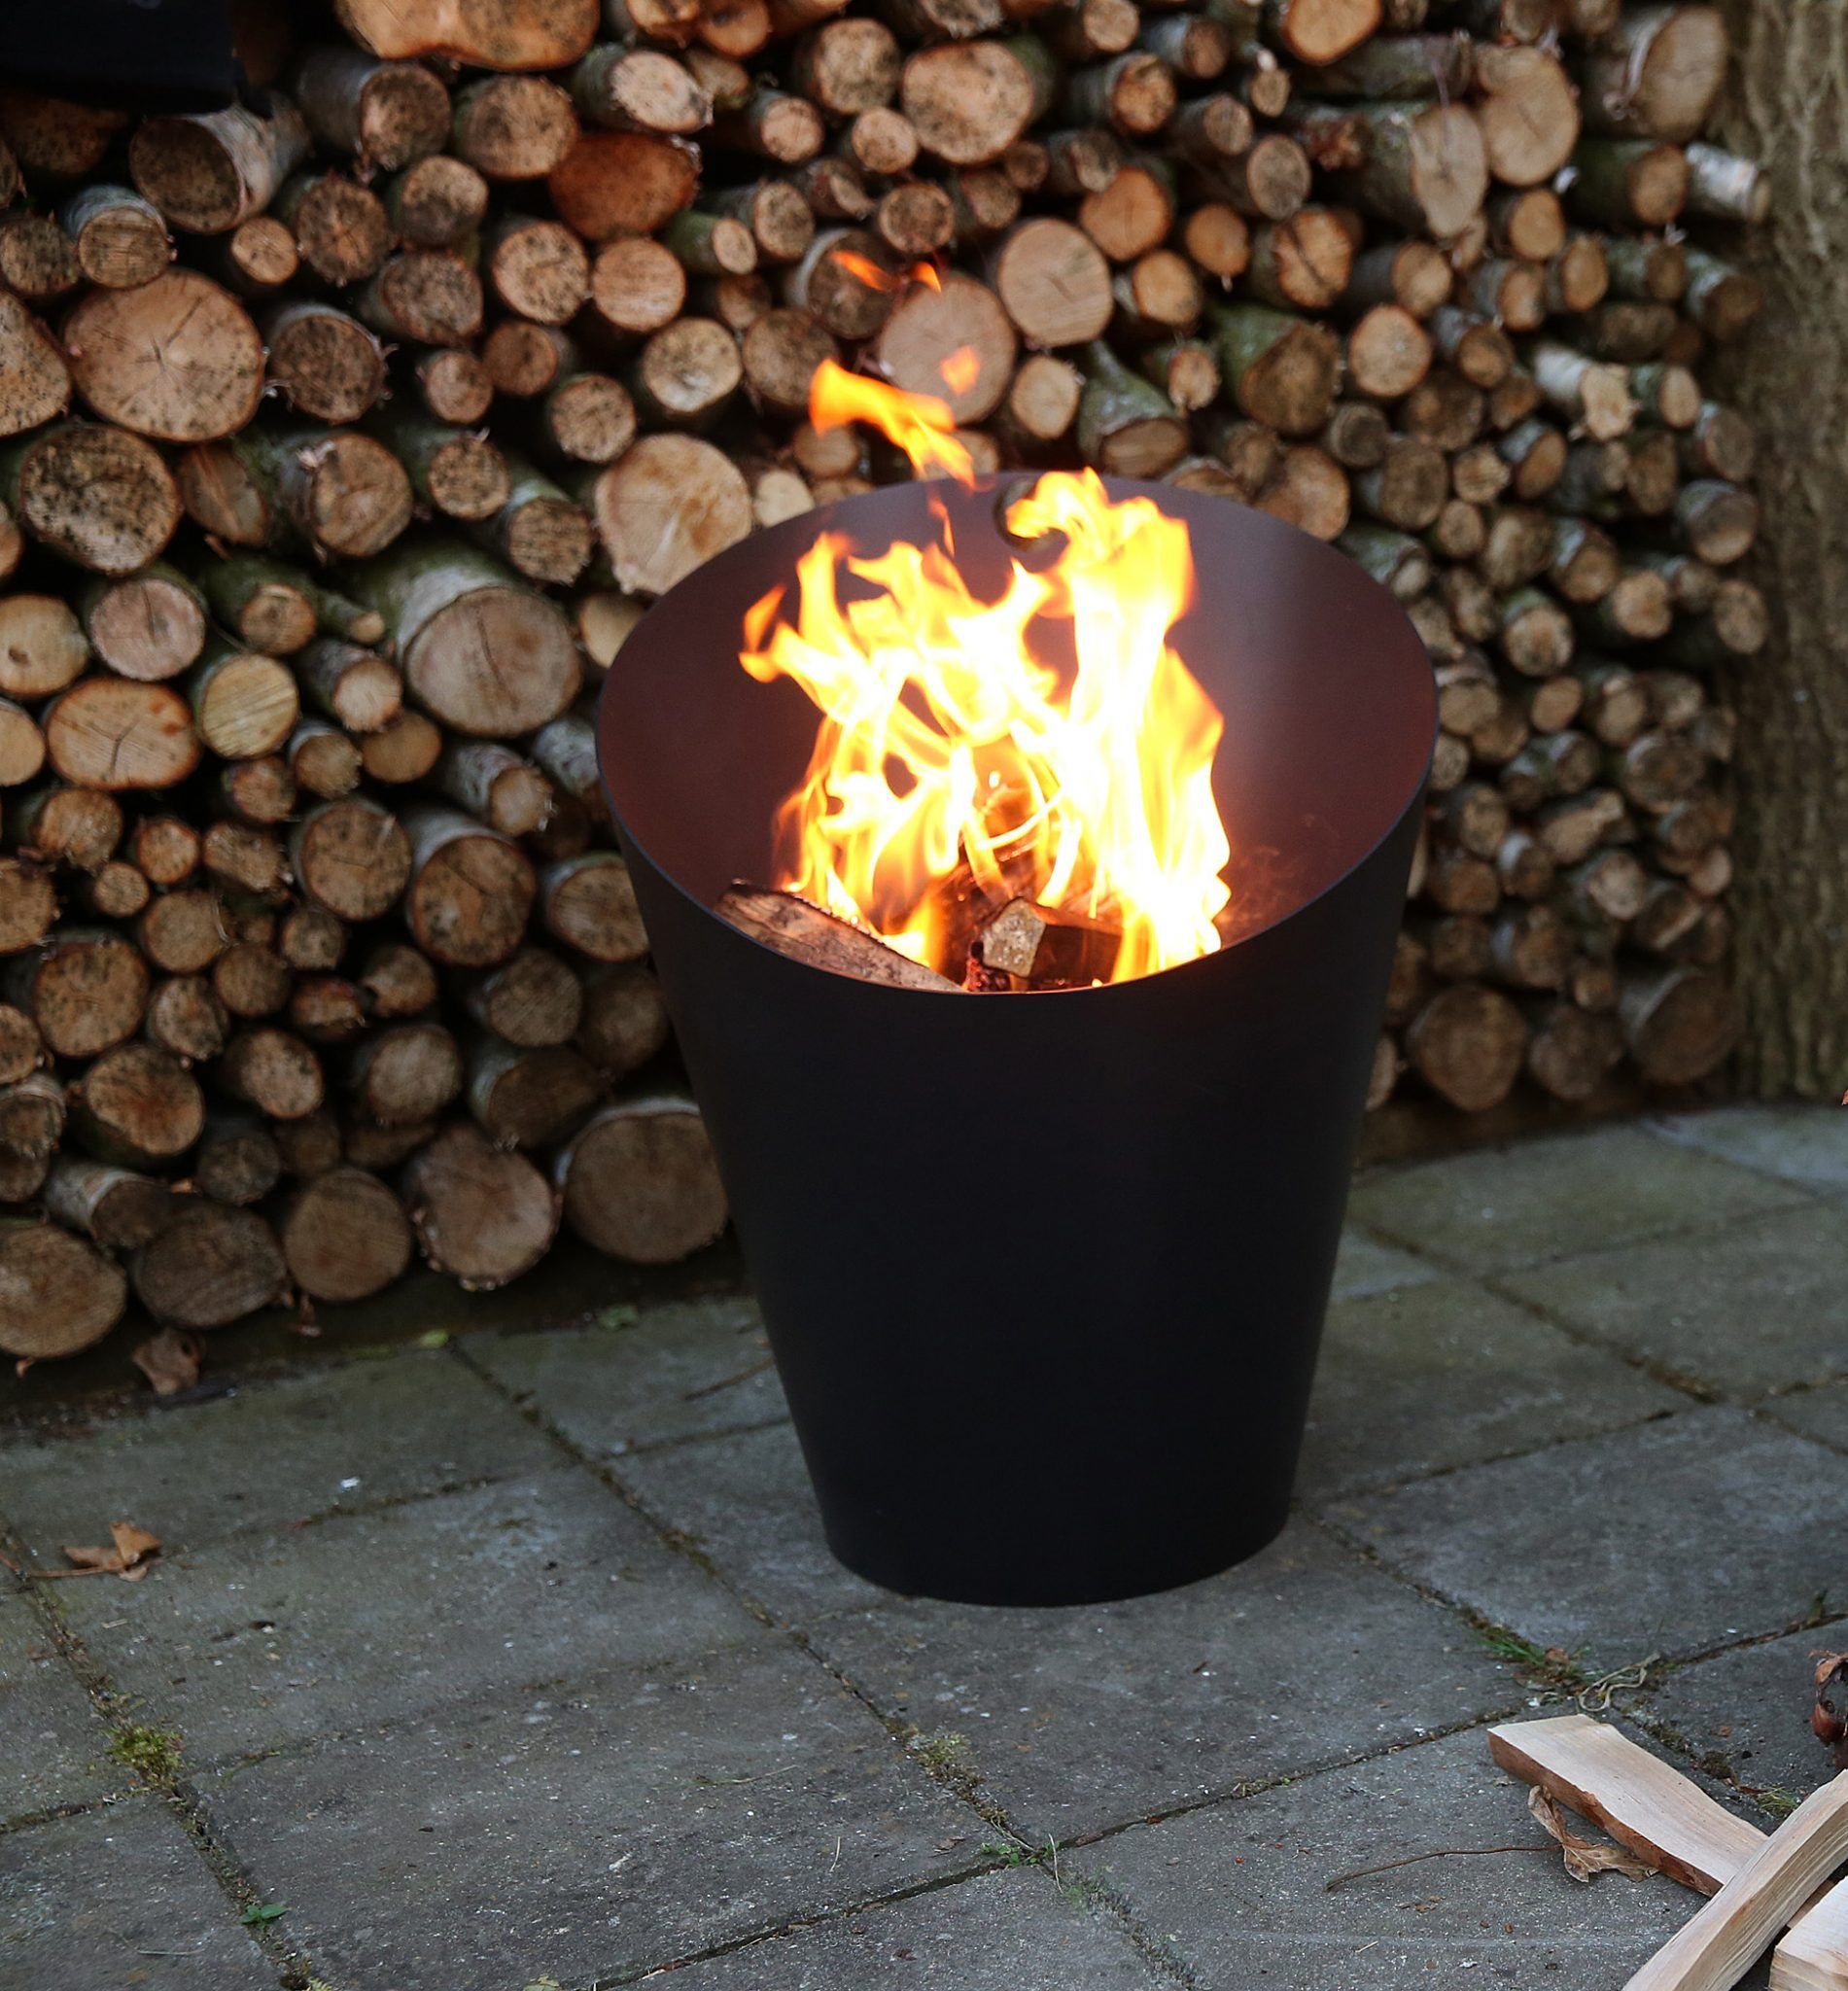 Morso Fire Pot Osowarm The Largest Morso Dealer In The Uk Fire Pots Fire Pit Outdoor Fire Pit